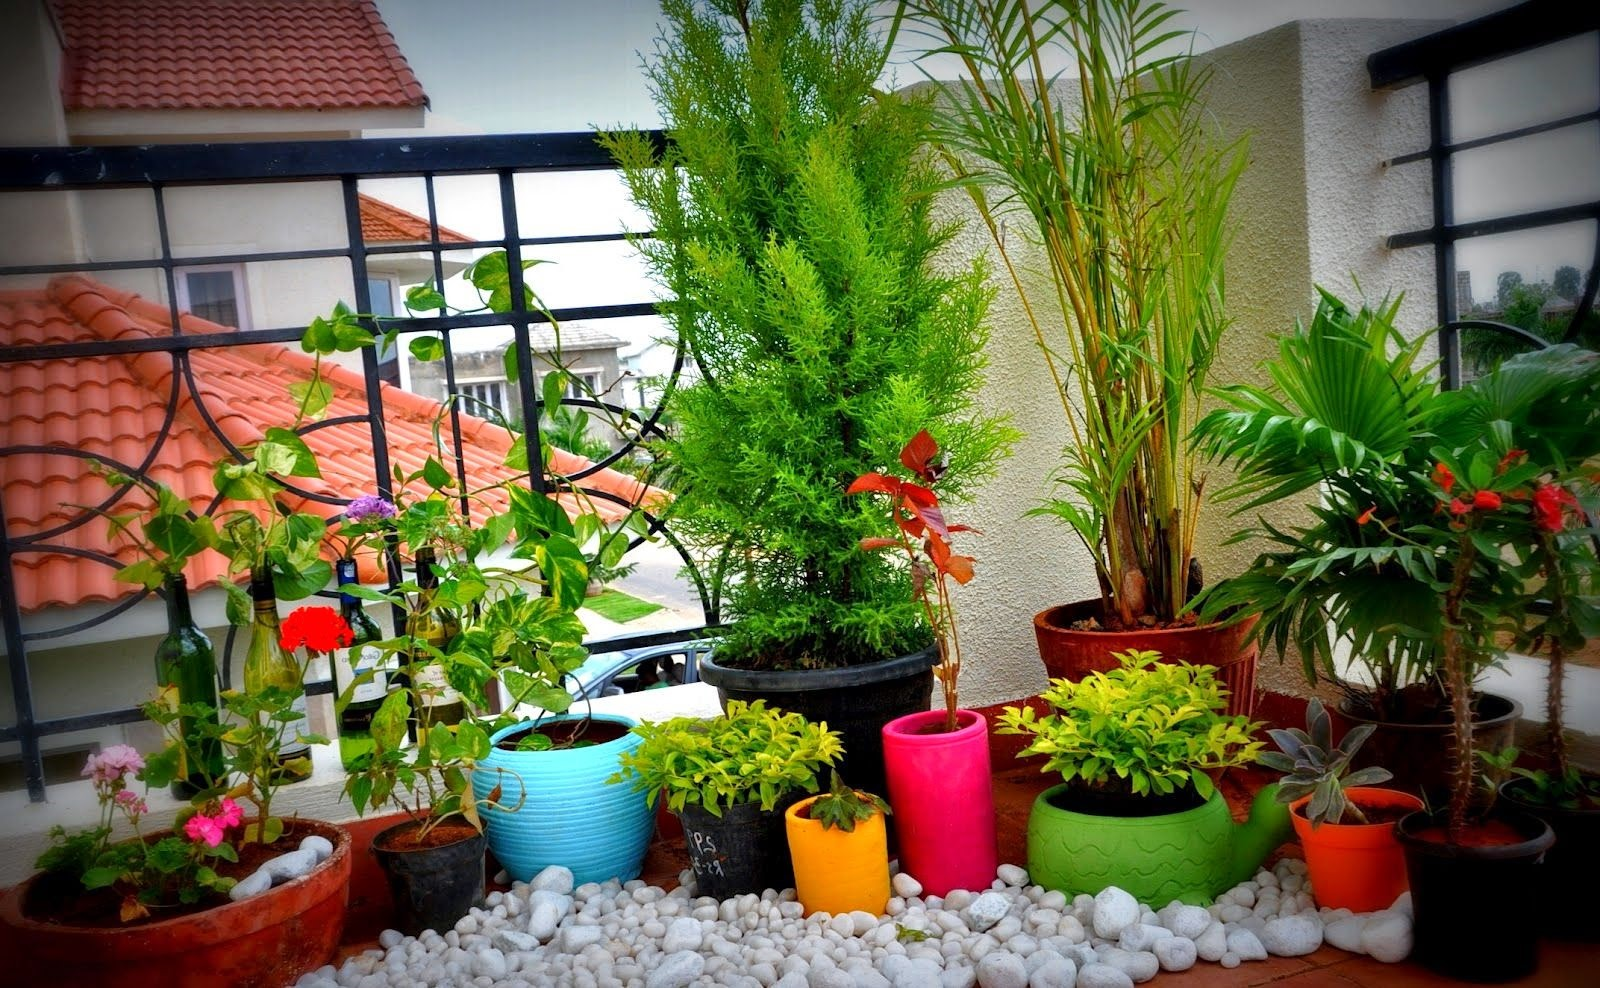 balcony gardening idea - Garden Ideas In Small Spaces